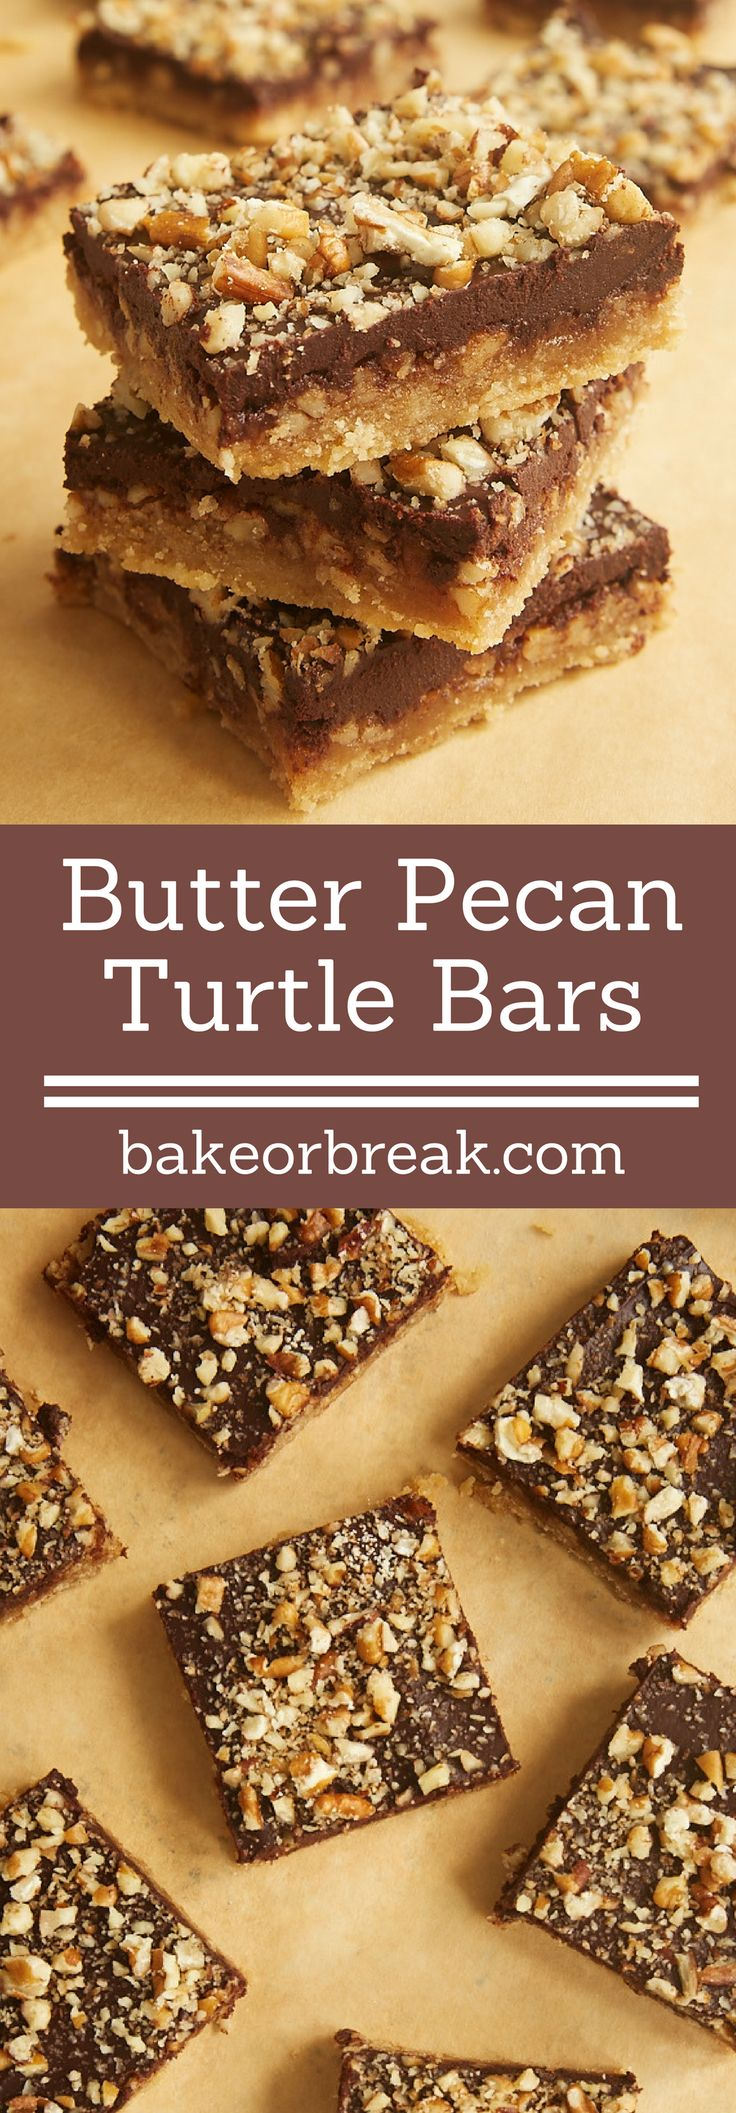 Butter Pecan Turtle Bars have so many delicious layers - shortbread, caramel, pecans, and chocolate. 100% irresistible! - Bake or Break ~ http://www.bakeorbreak.com